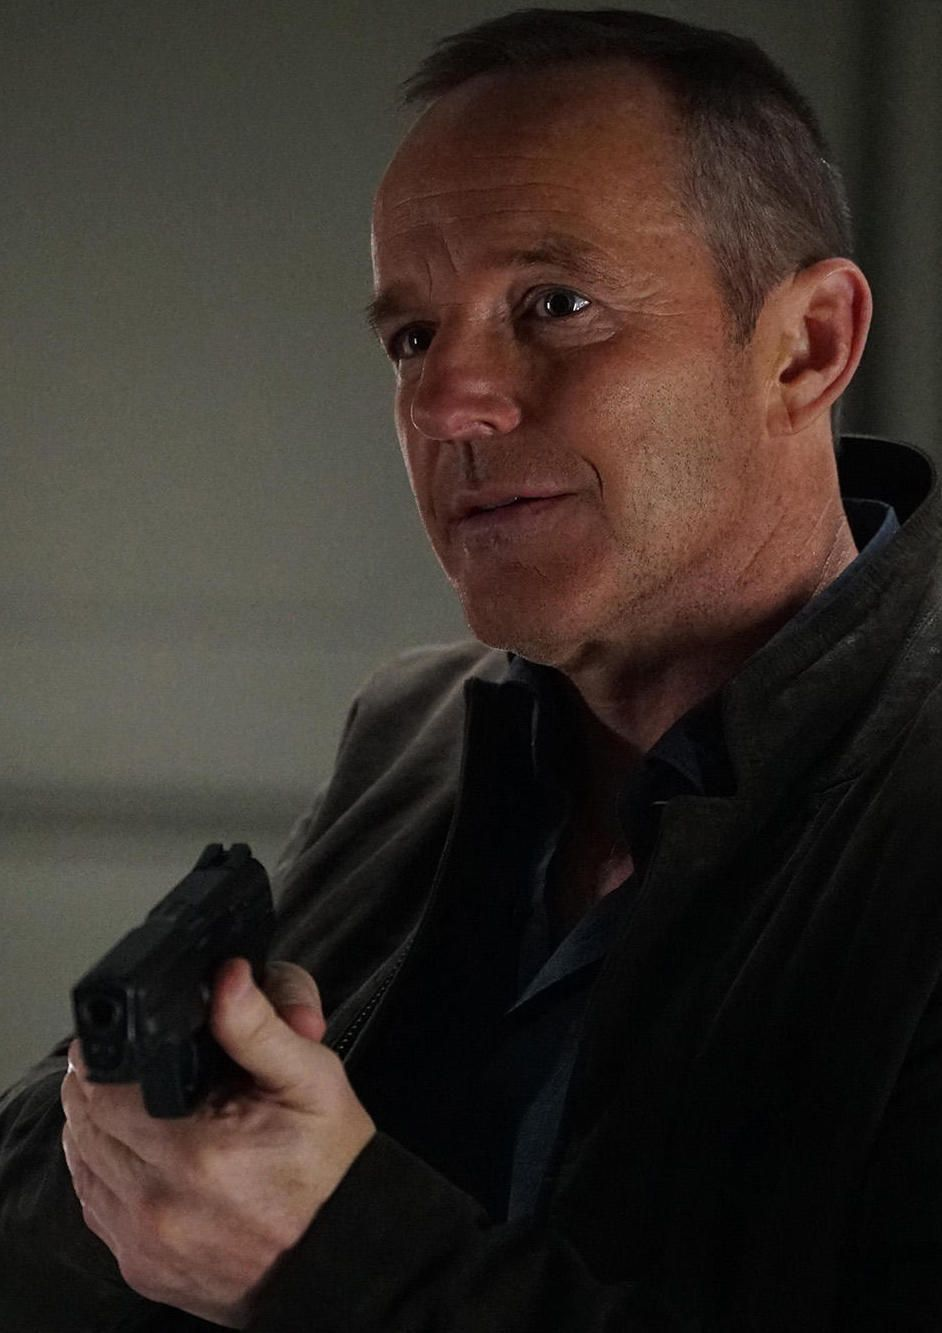 Clark Gregg as Agent Coulson on Agents of SHIELD season 5